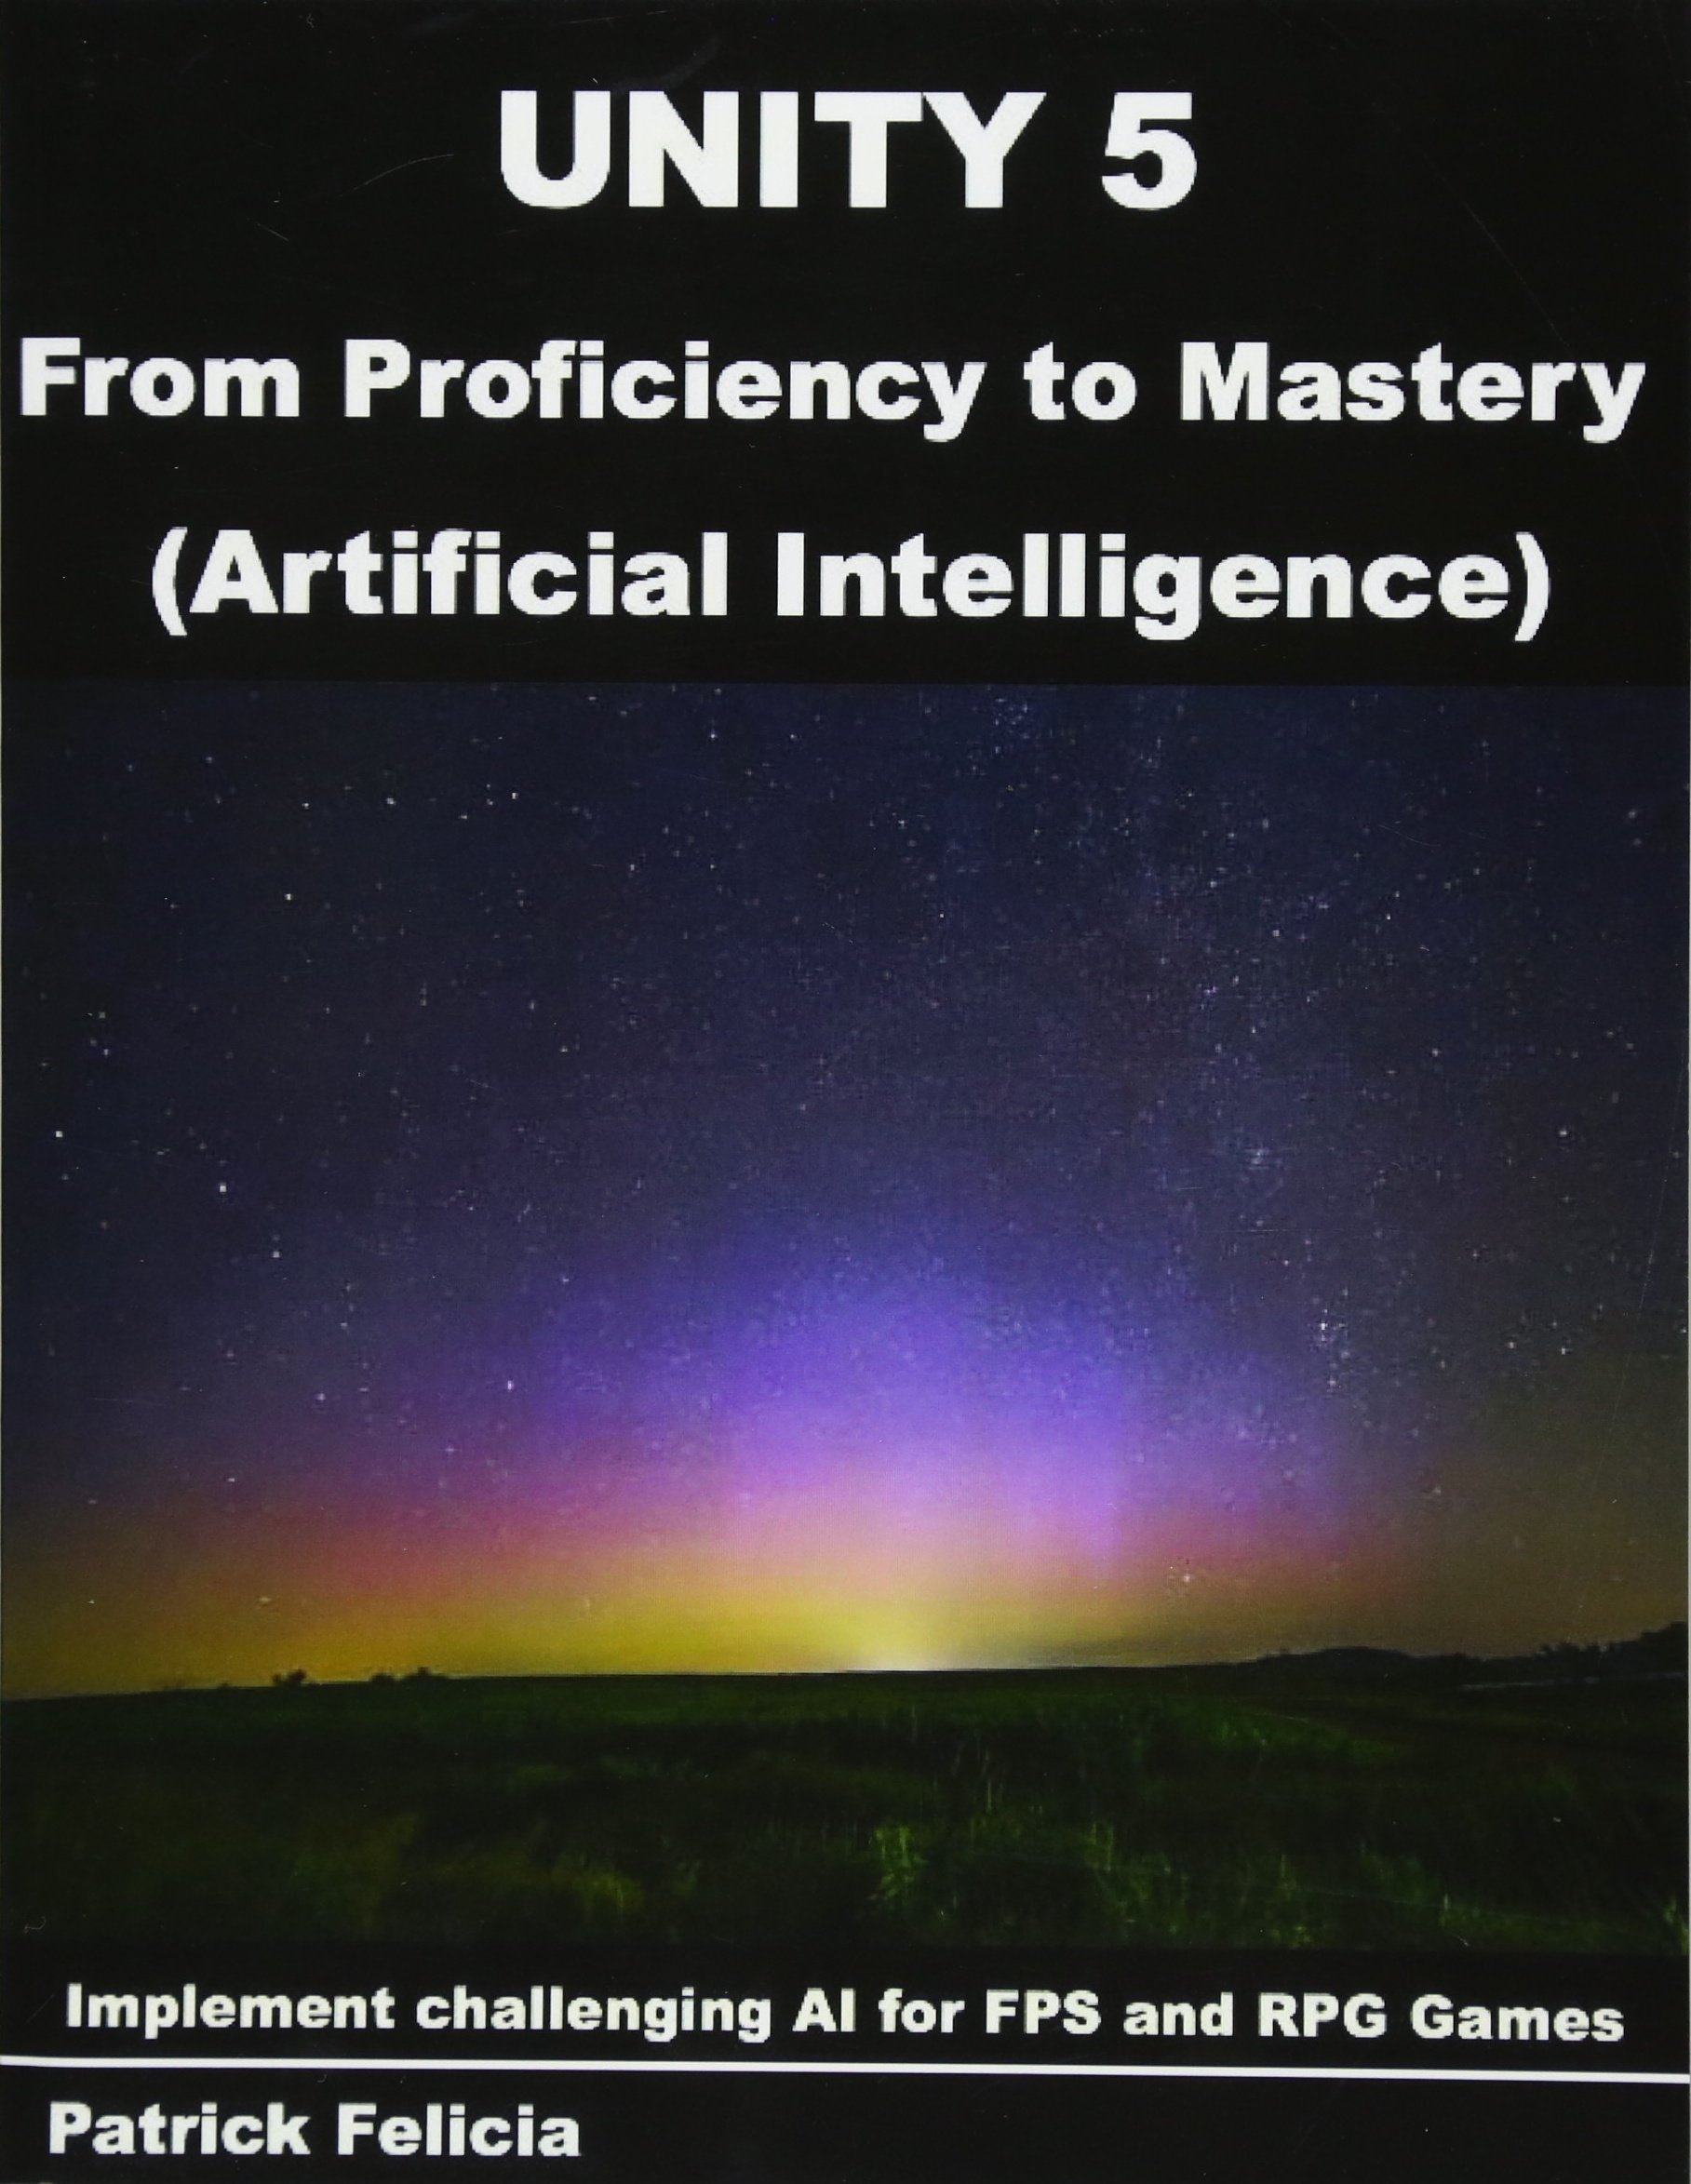 Unity 5 from Proficiency to Mastery: Artificial Intelligence